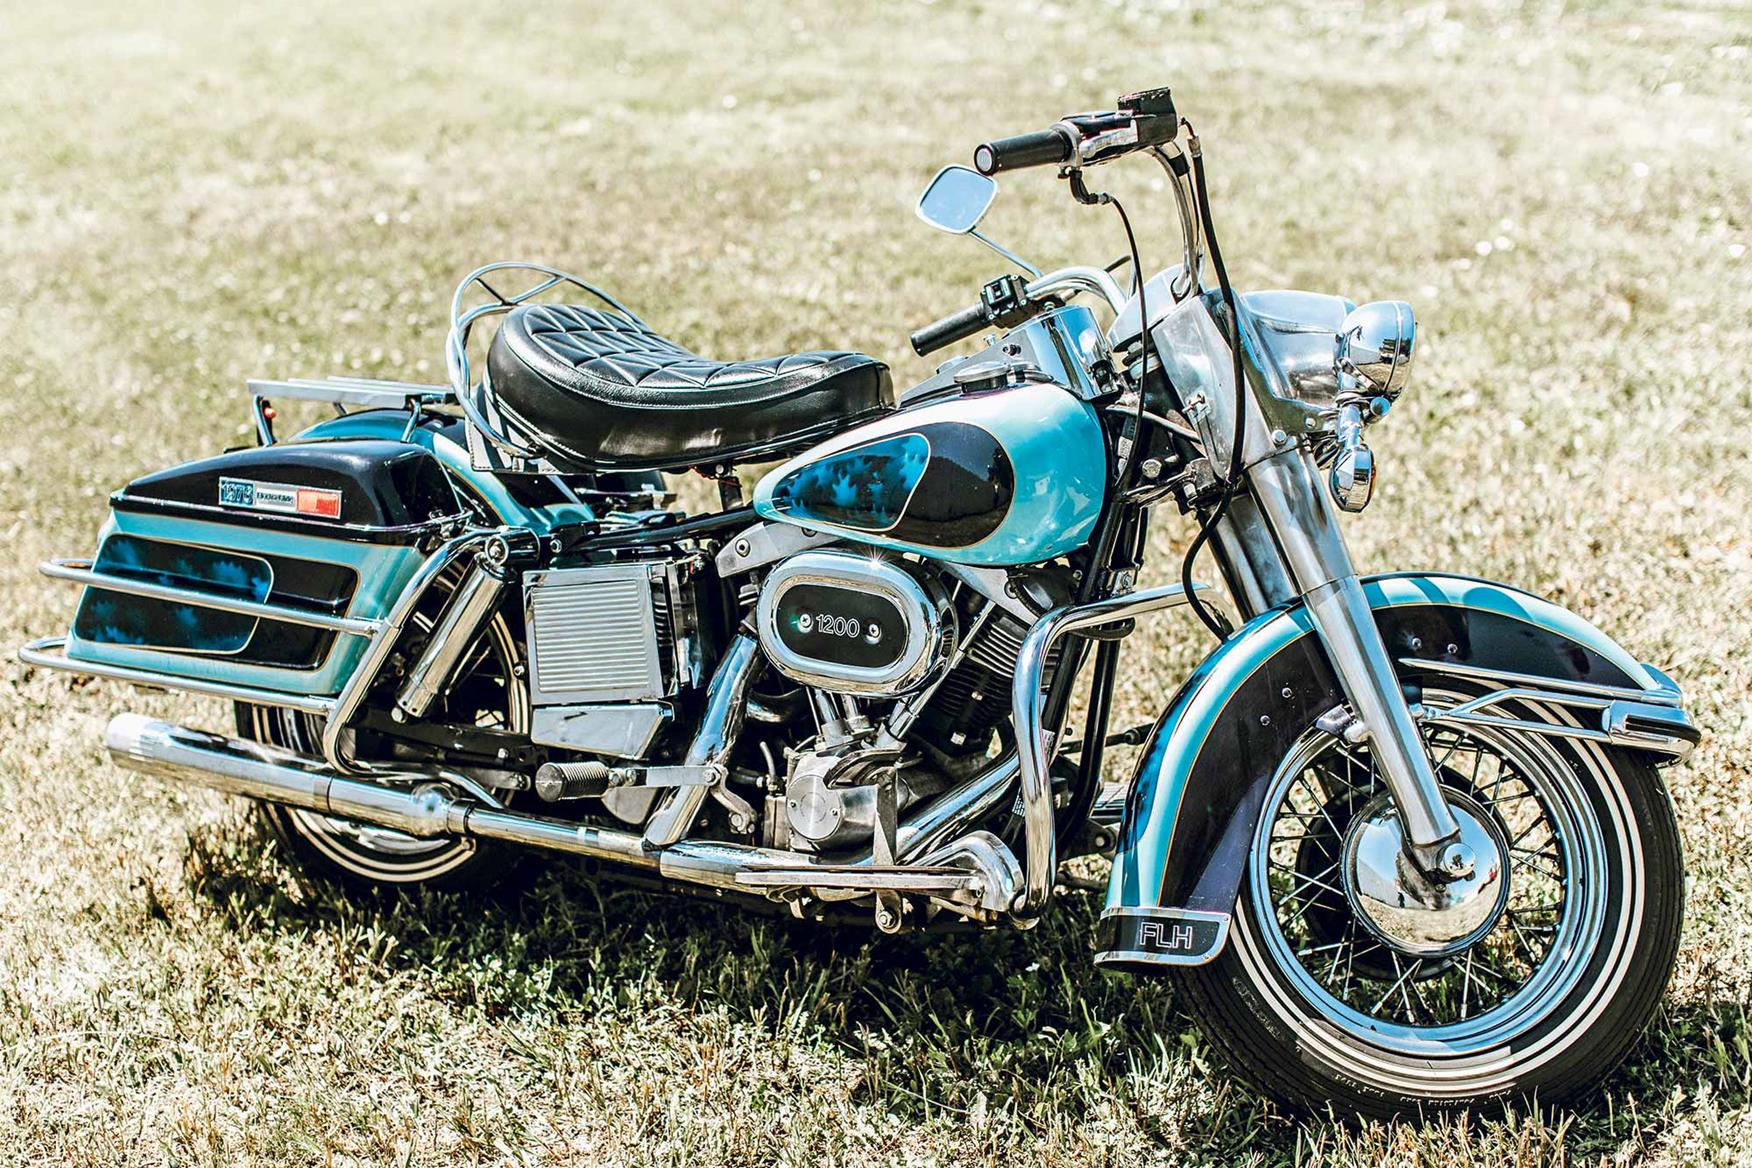 Elvis' 1976 Harley-Davidson FLH is set to become the most expensive bike sold at auction